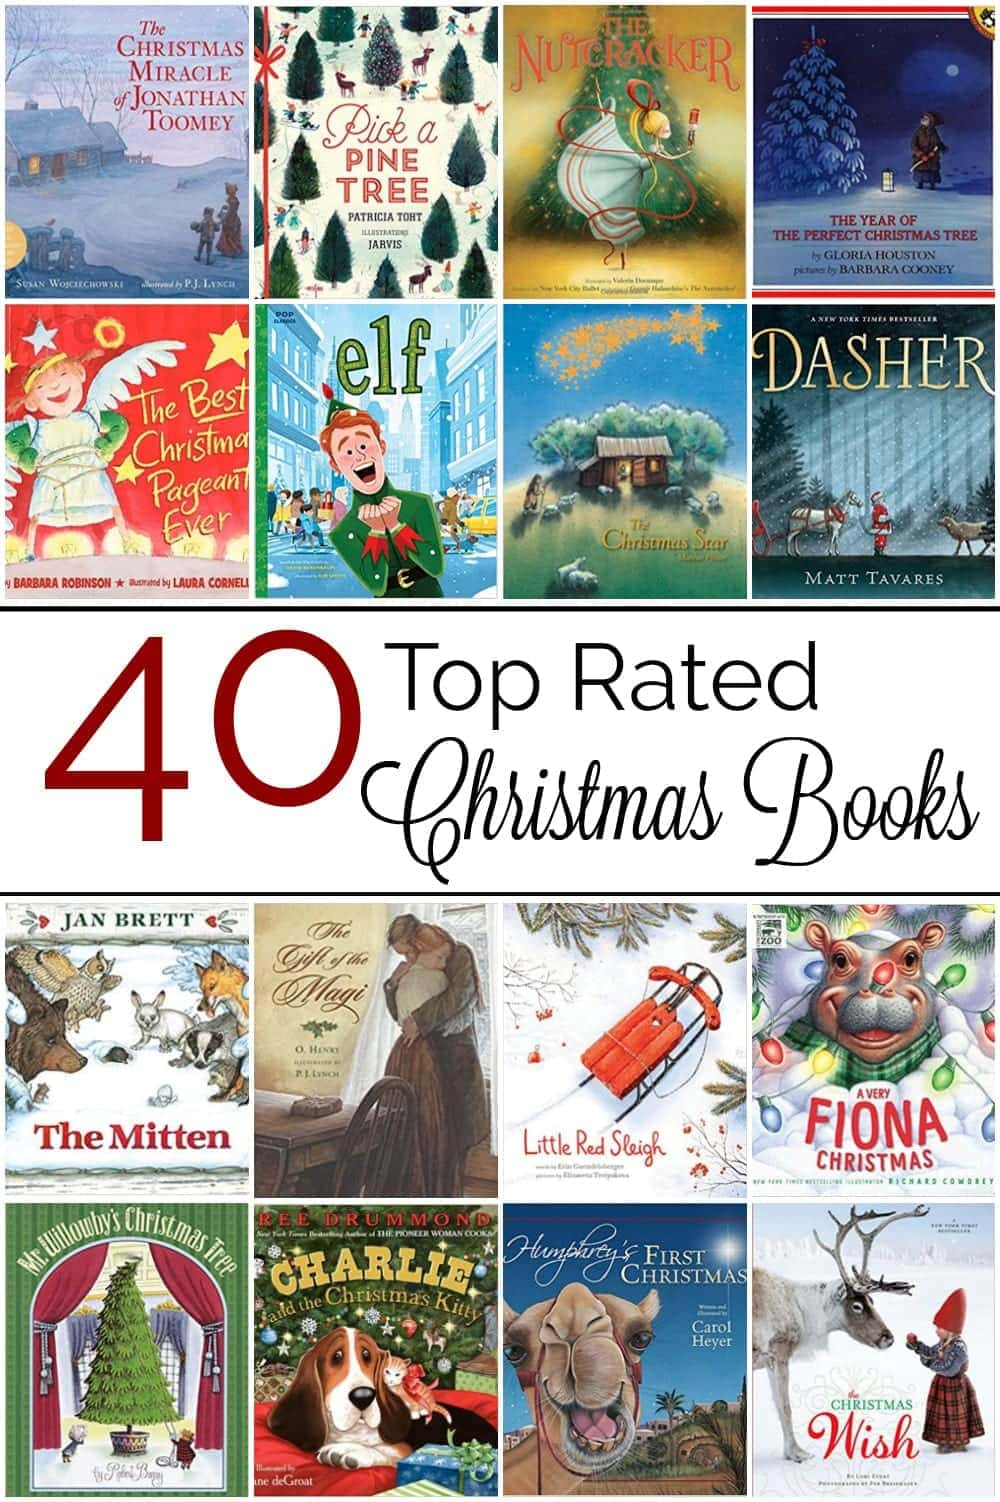 Top Rated Christmas Books for Kids